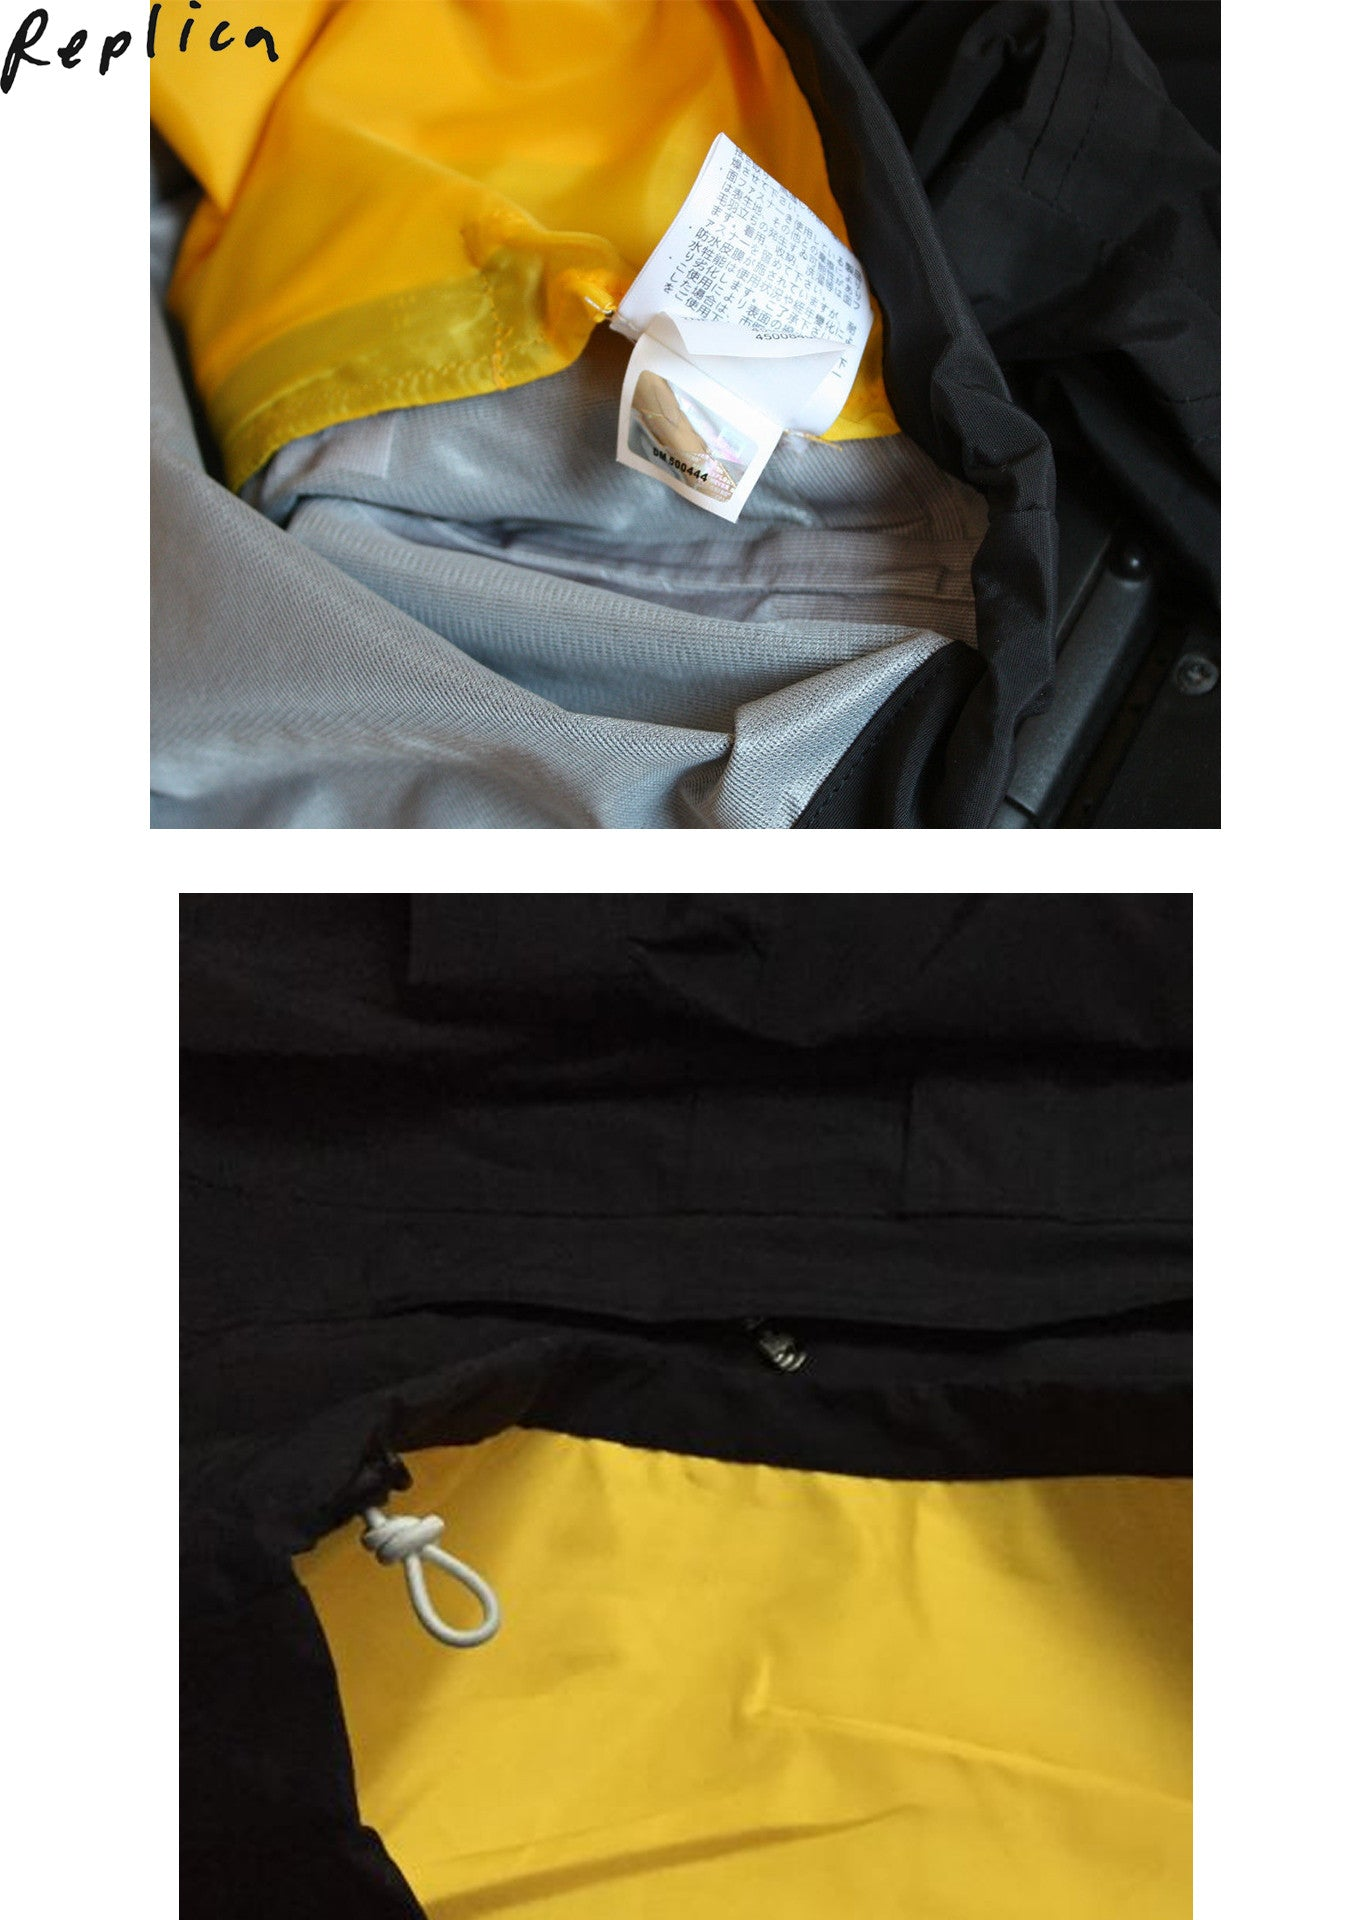 Supreme x The North Face Expedition Pullover (S/S 2010)